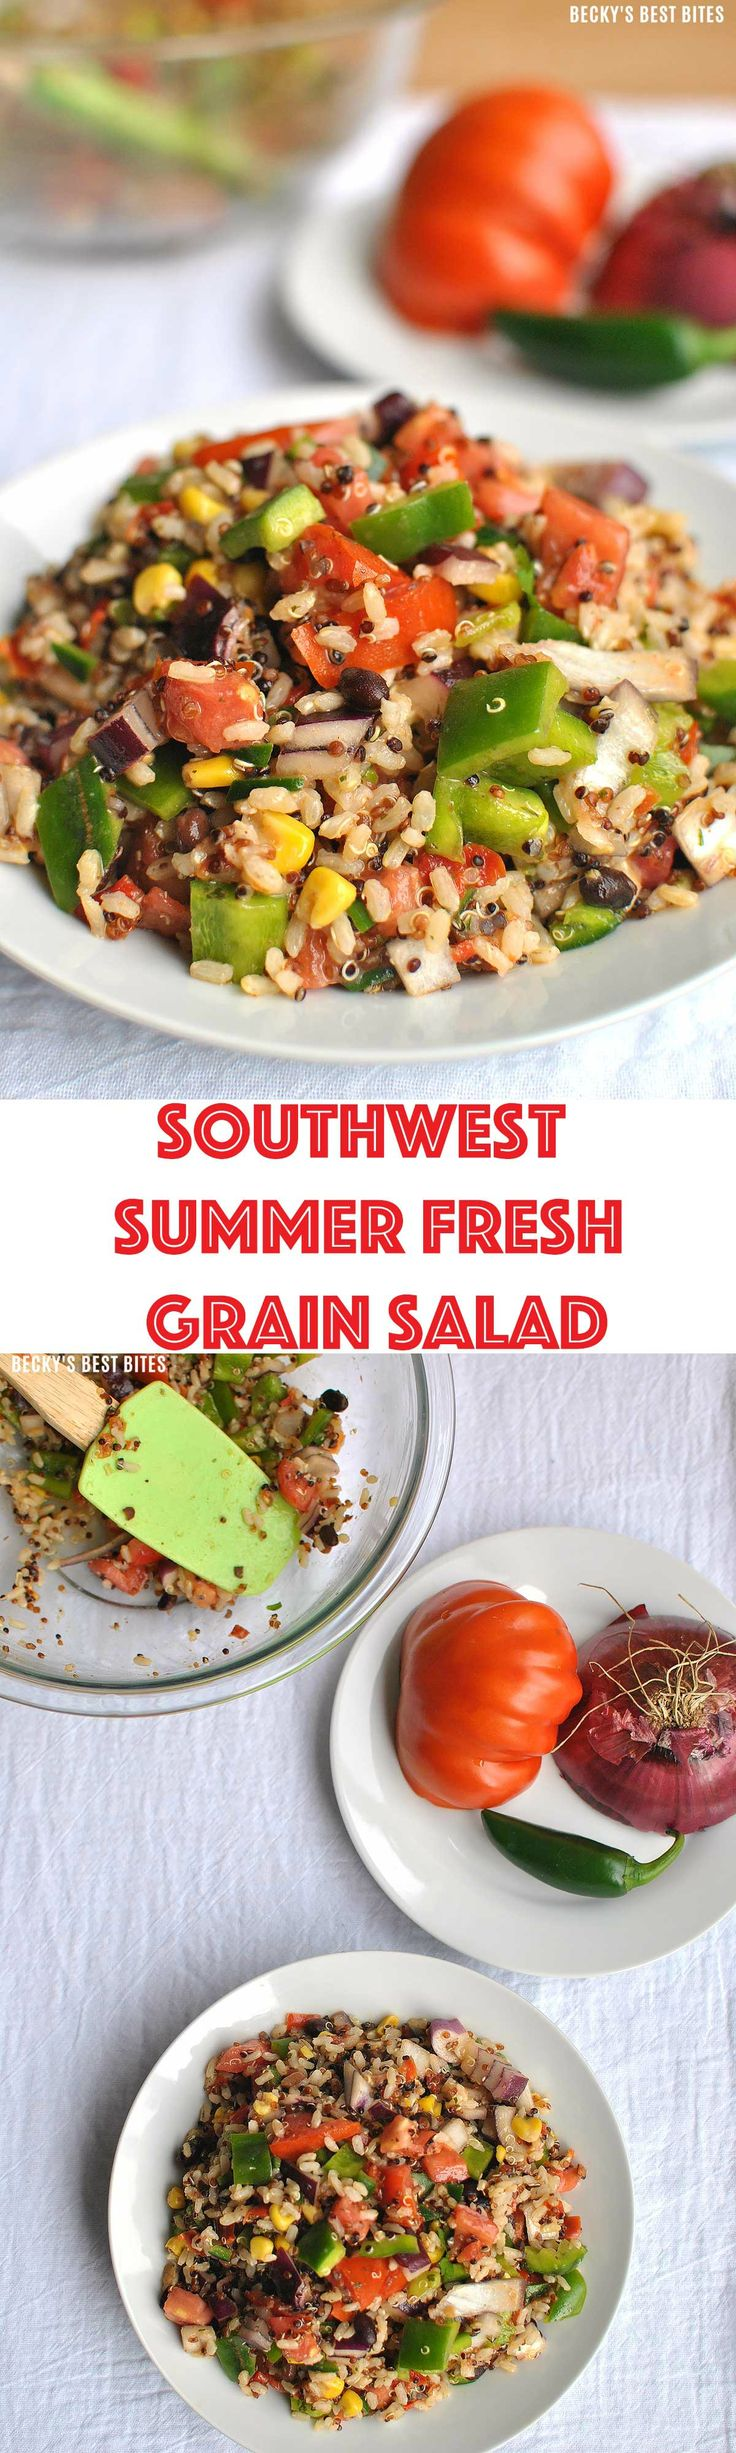 Southwest Summer Fresh Grain Salad is a a healthy recipe for any BBQ. Just a few fresh add-ins make this Suddenly Salad with quinoa and brown rice a smart idea for a family dinner.  Enter to win $15 PayPal cash too :) #Ad #suddenlysalad